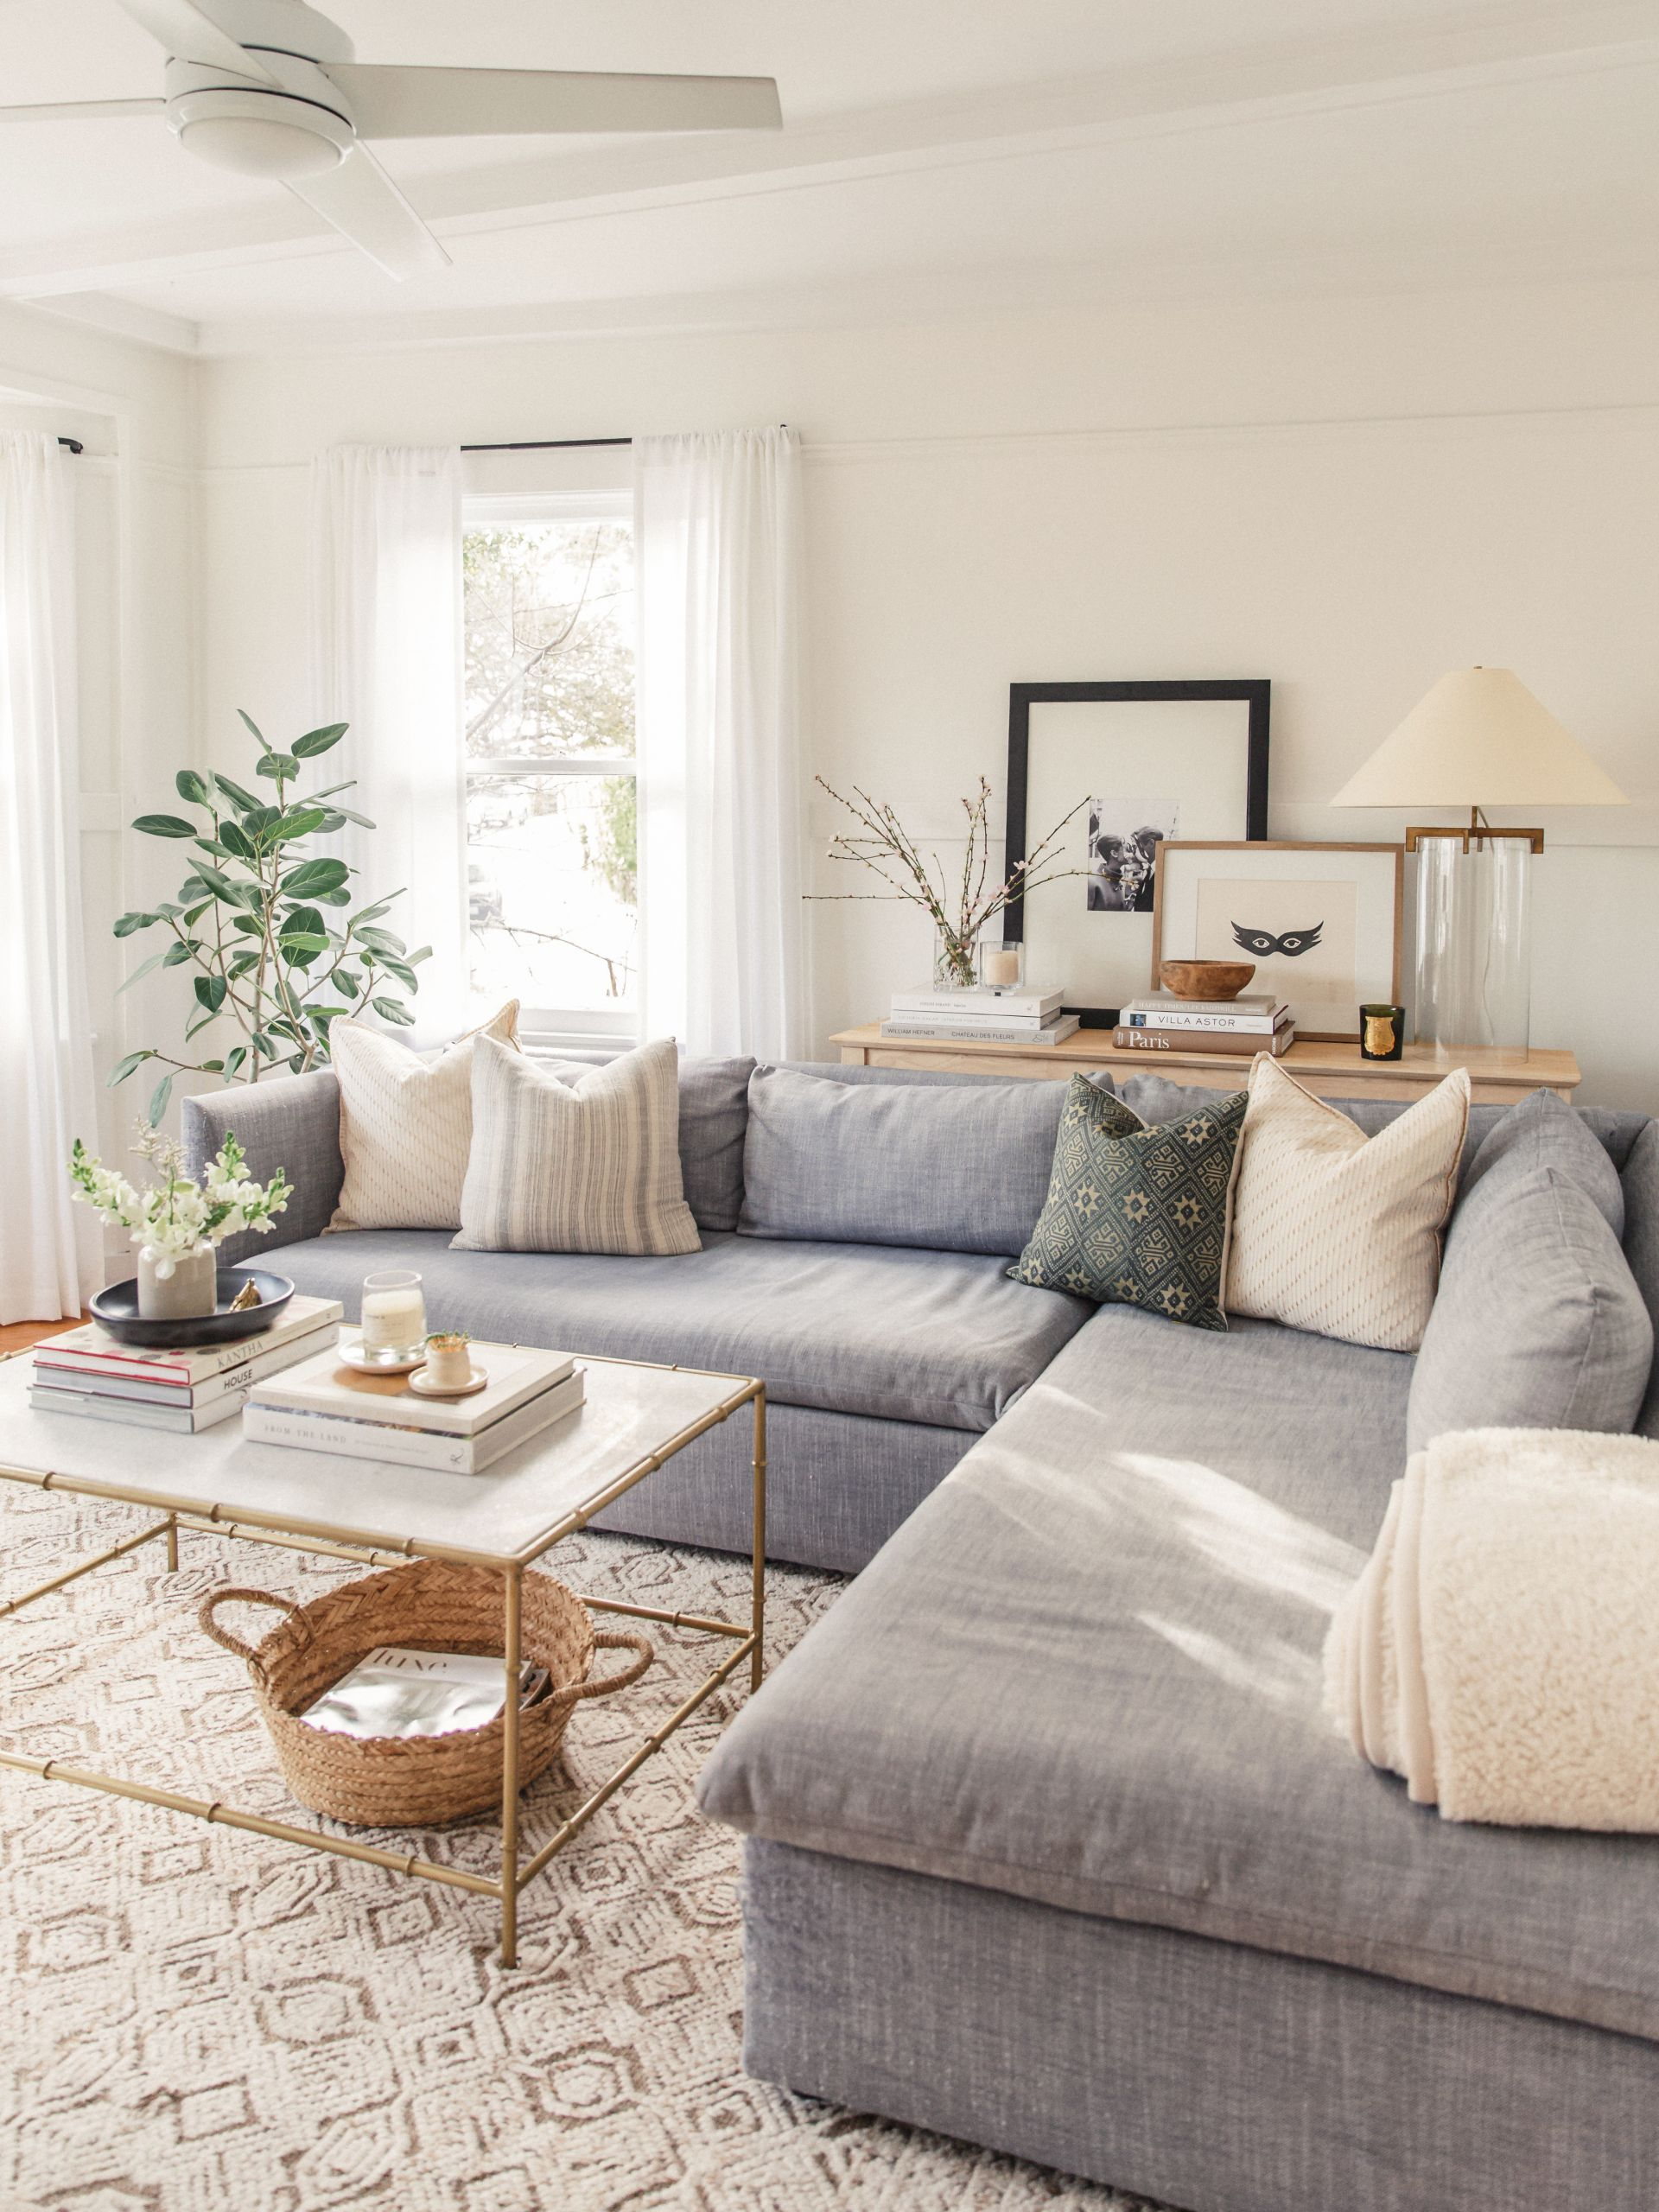 Small Living Room Decor Ideas  Small Living Room Decor Ideas That ll Open up Your Space